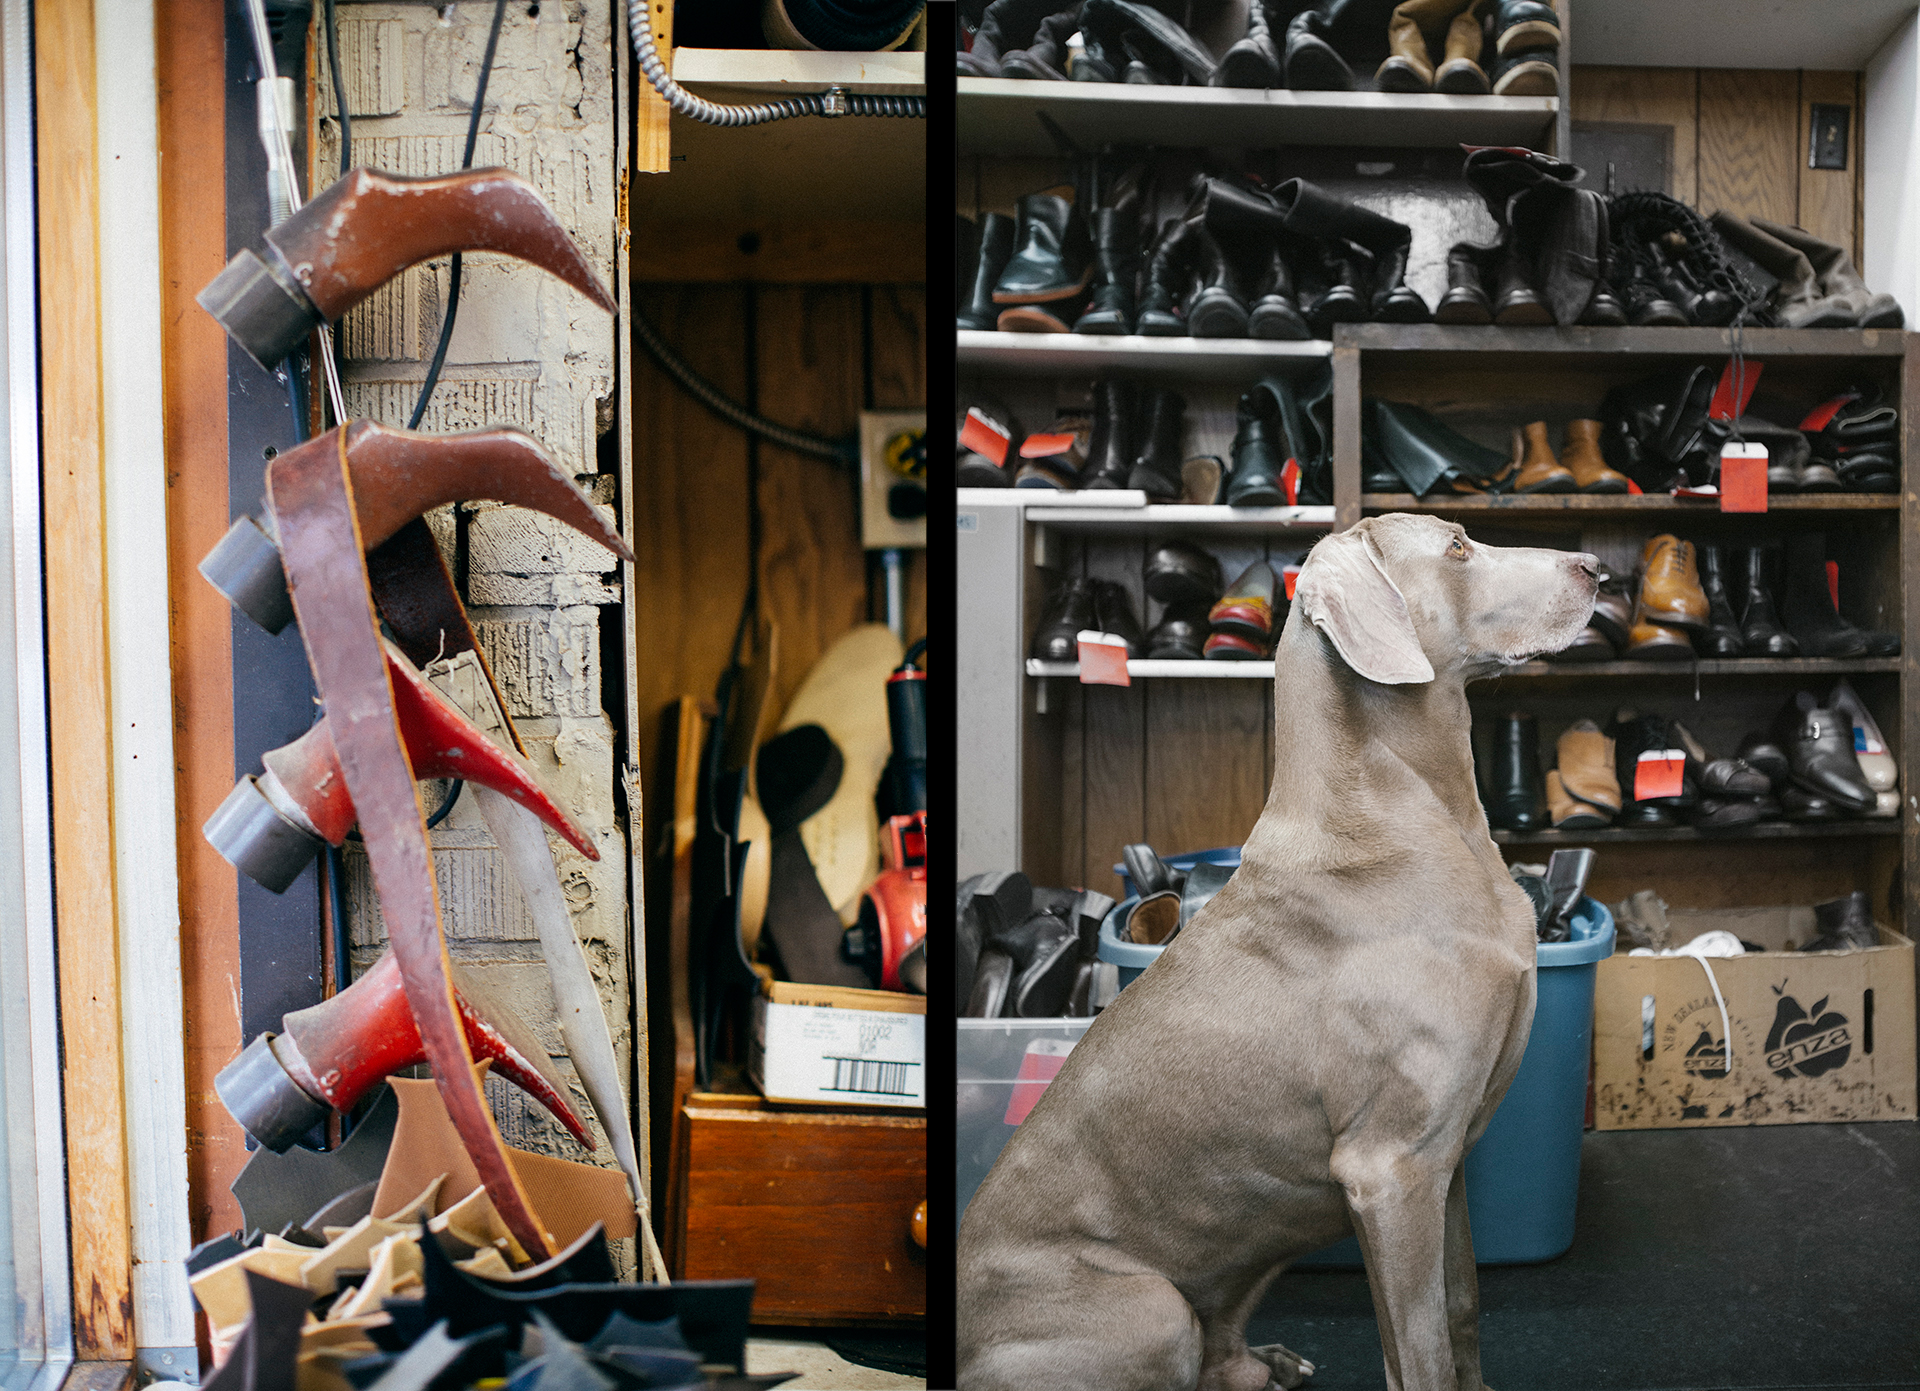 Shoe horns & the shop dog major stand at attention